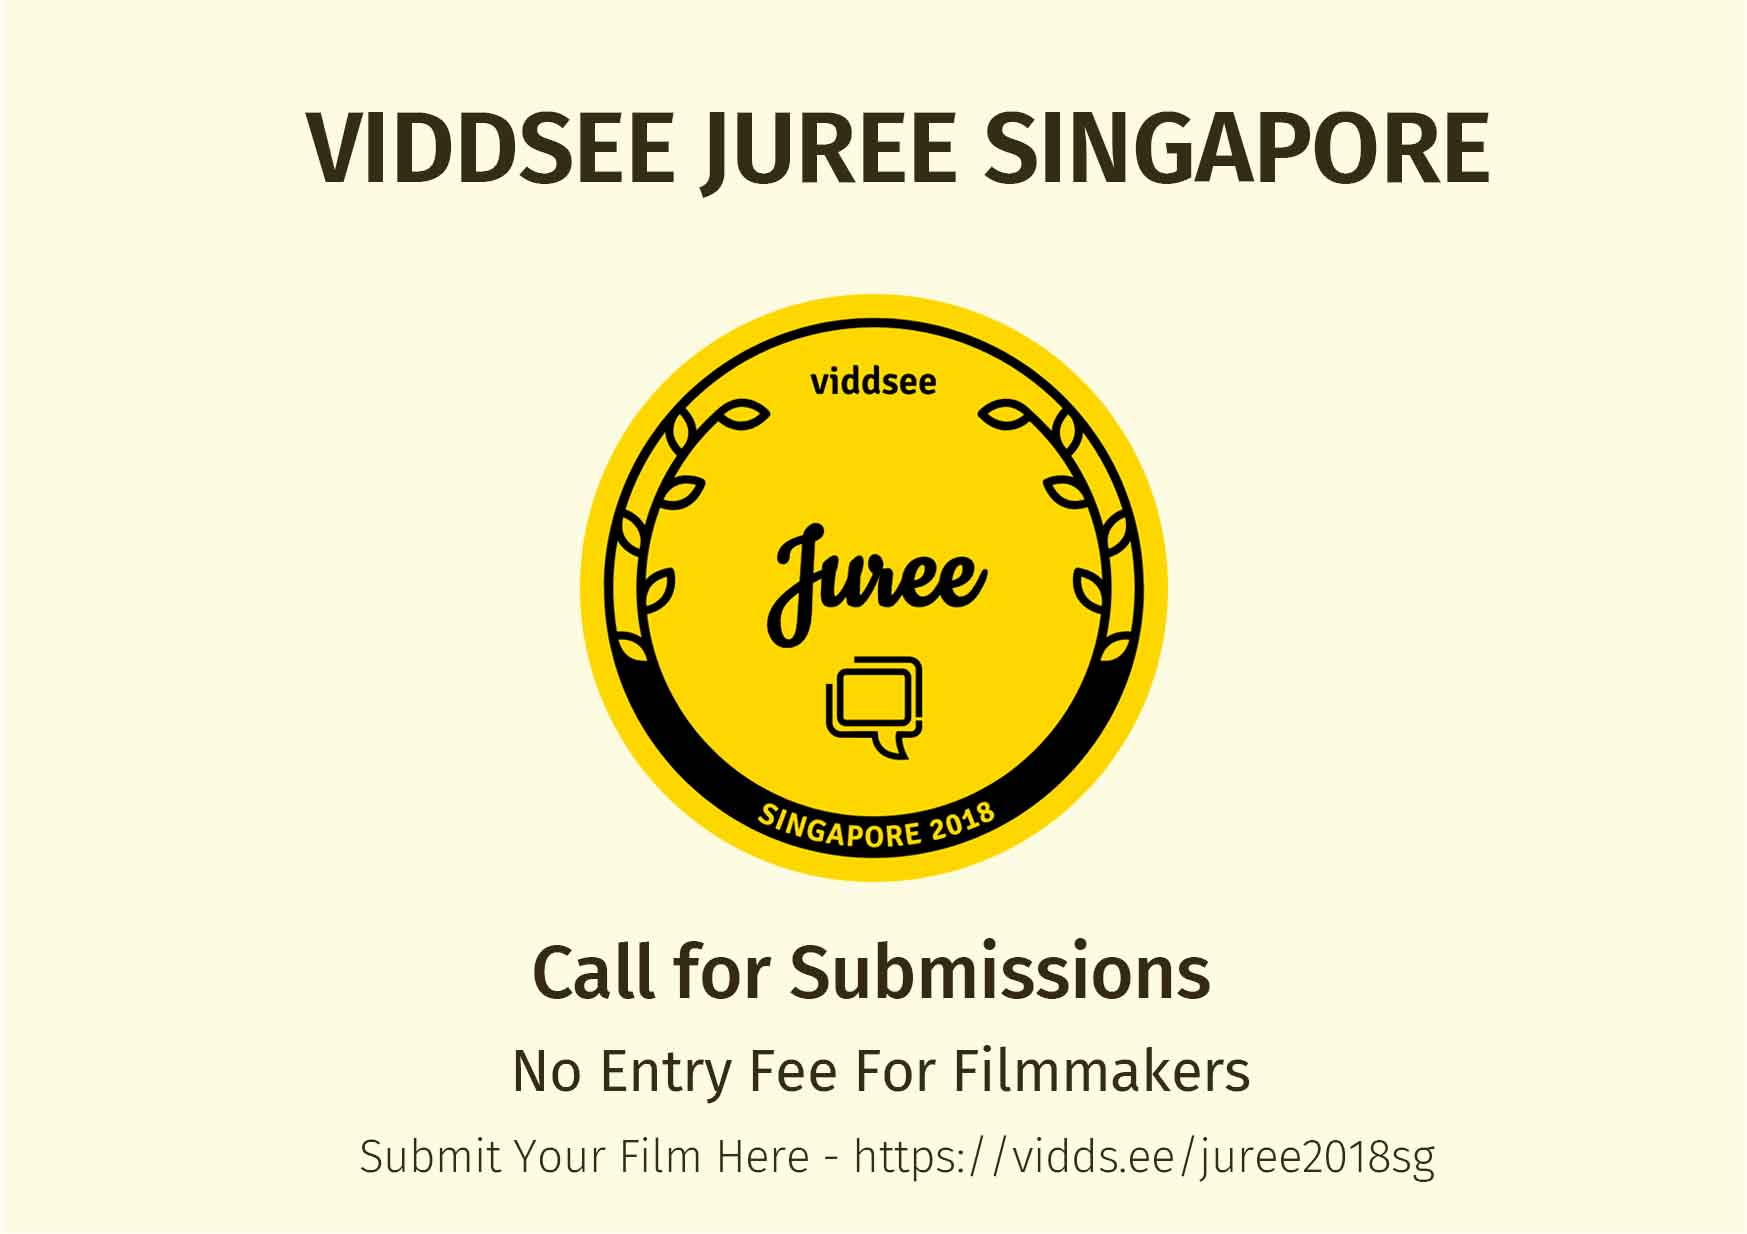 Viddsee Juree Singapore call for submissions - no entry fee for filmmakers